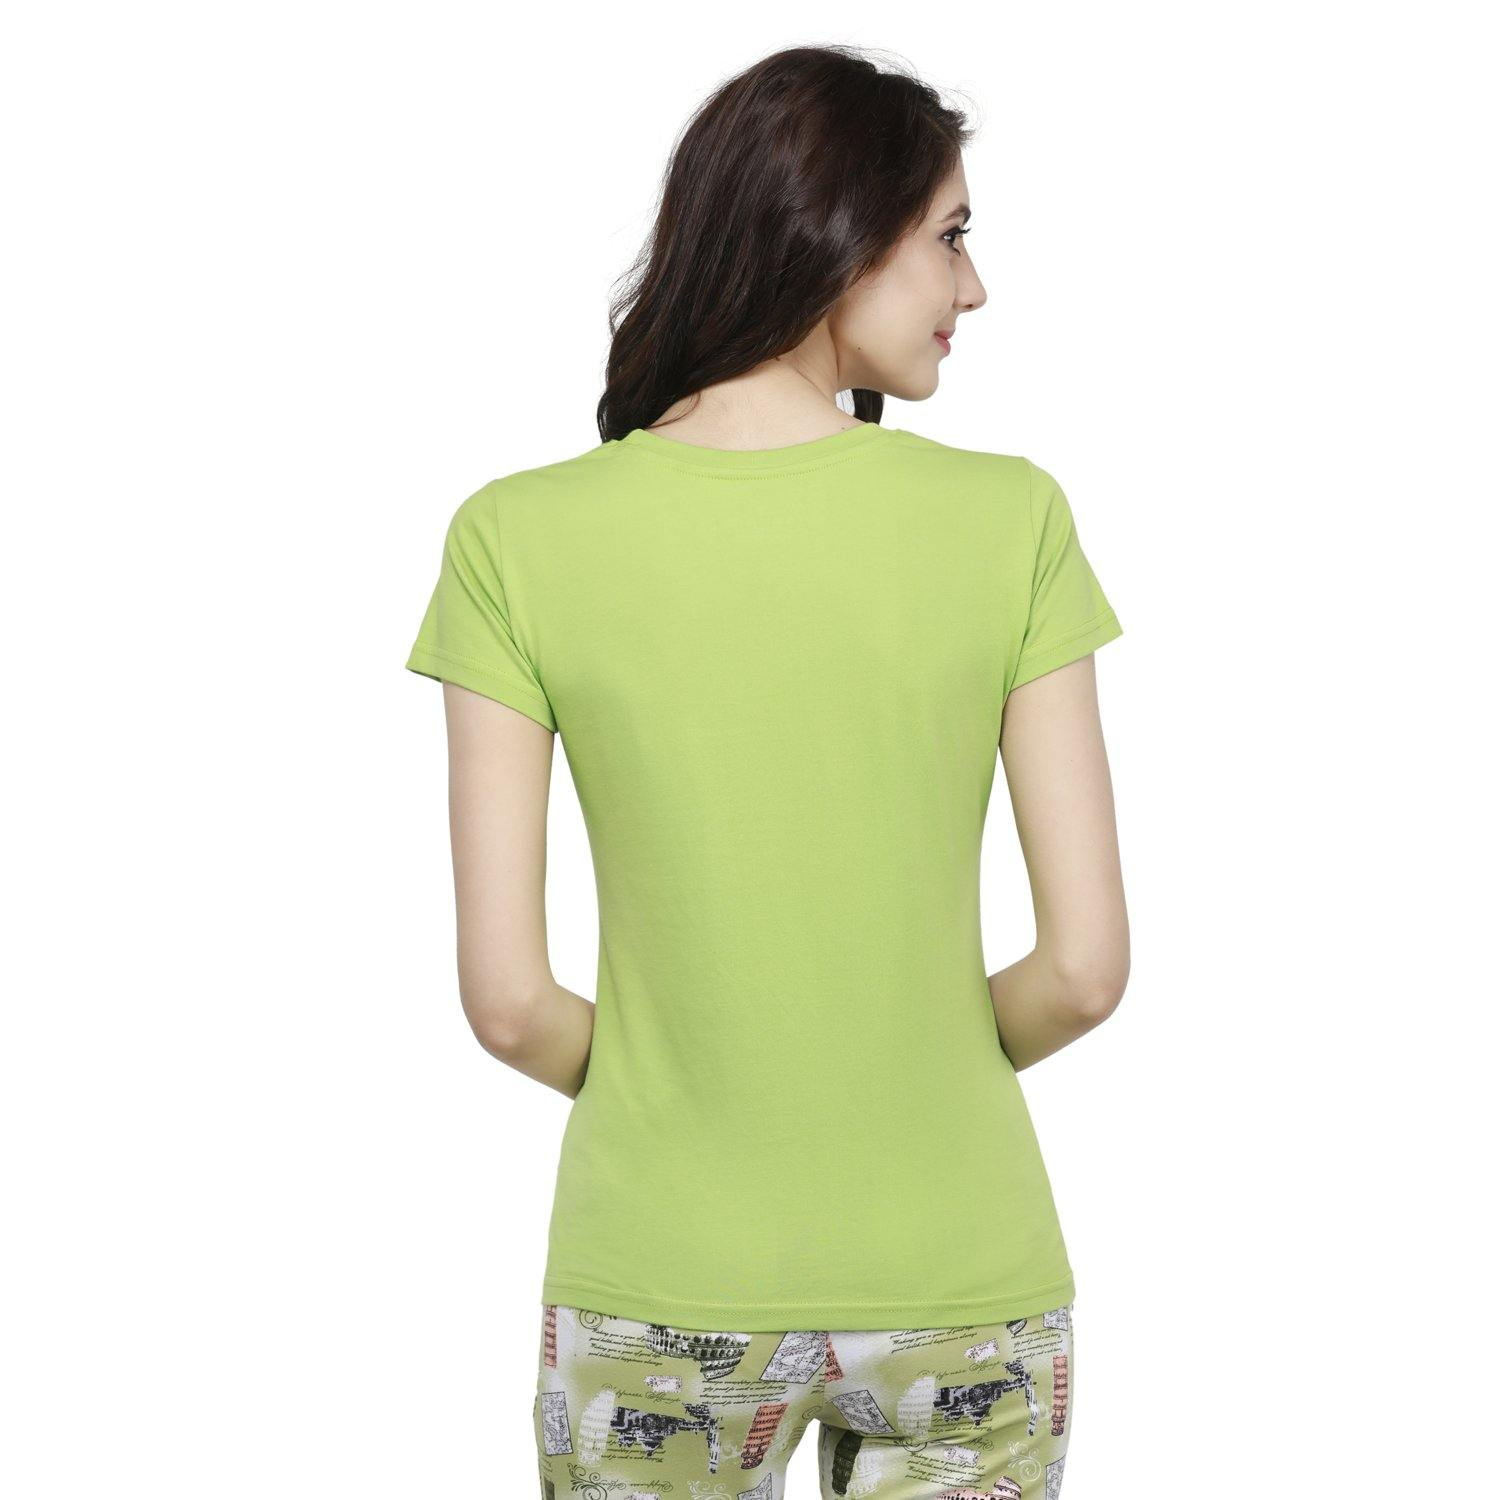 Casual Half Sleeve Women's T-Shirt For Summer - Greenery - Bonjour Group